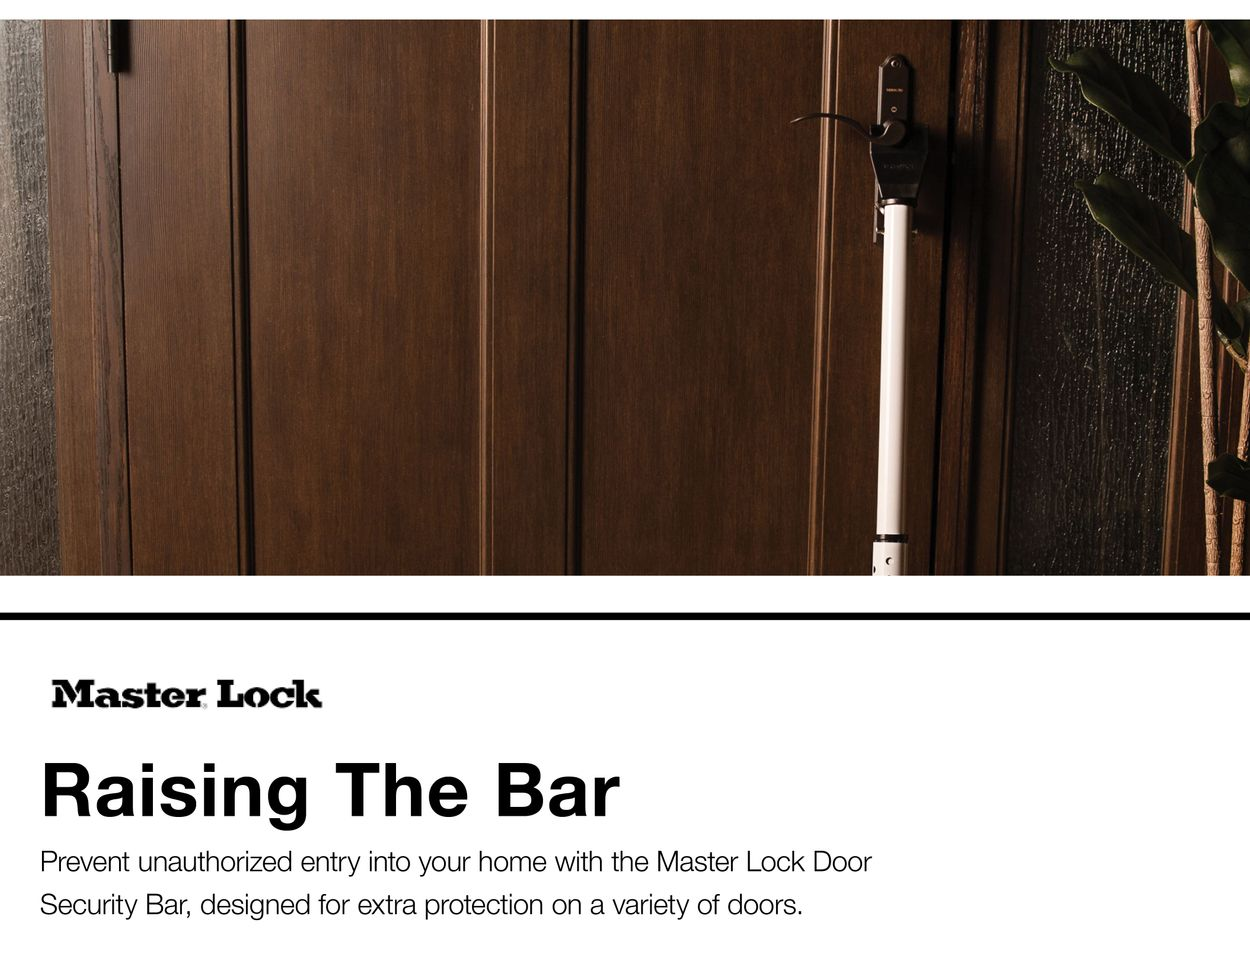 30 Inch Exterior Doors At Lowes Menards Or Home Depot